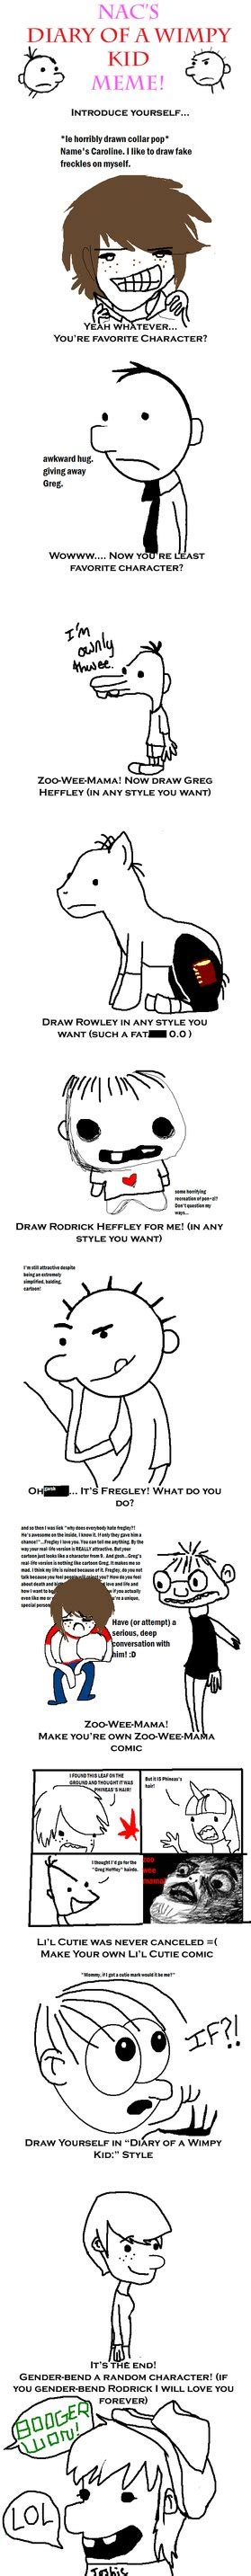 Wimpy Meme - diary of a wimpy kid meme by abductionfromabove on deviantart